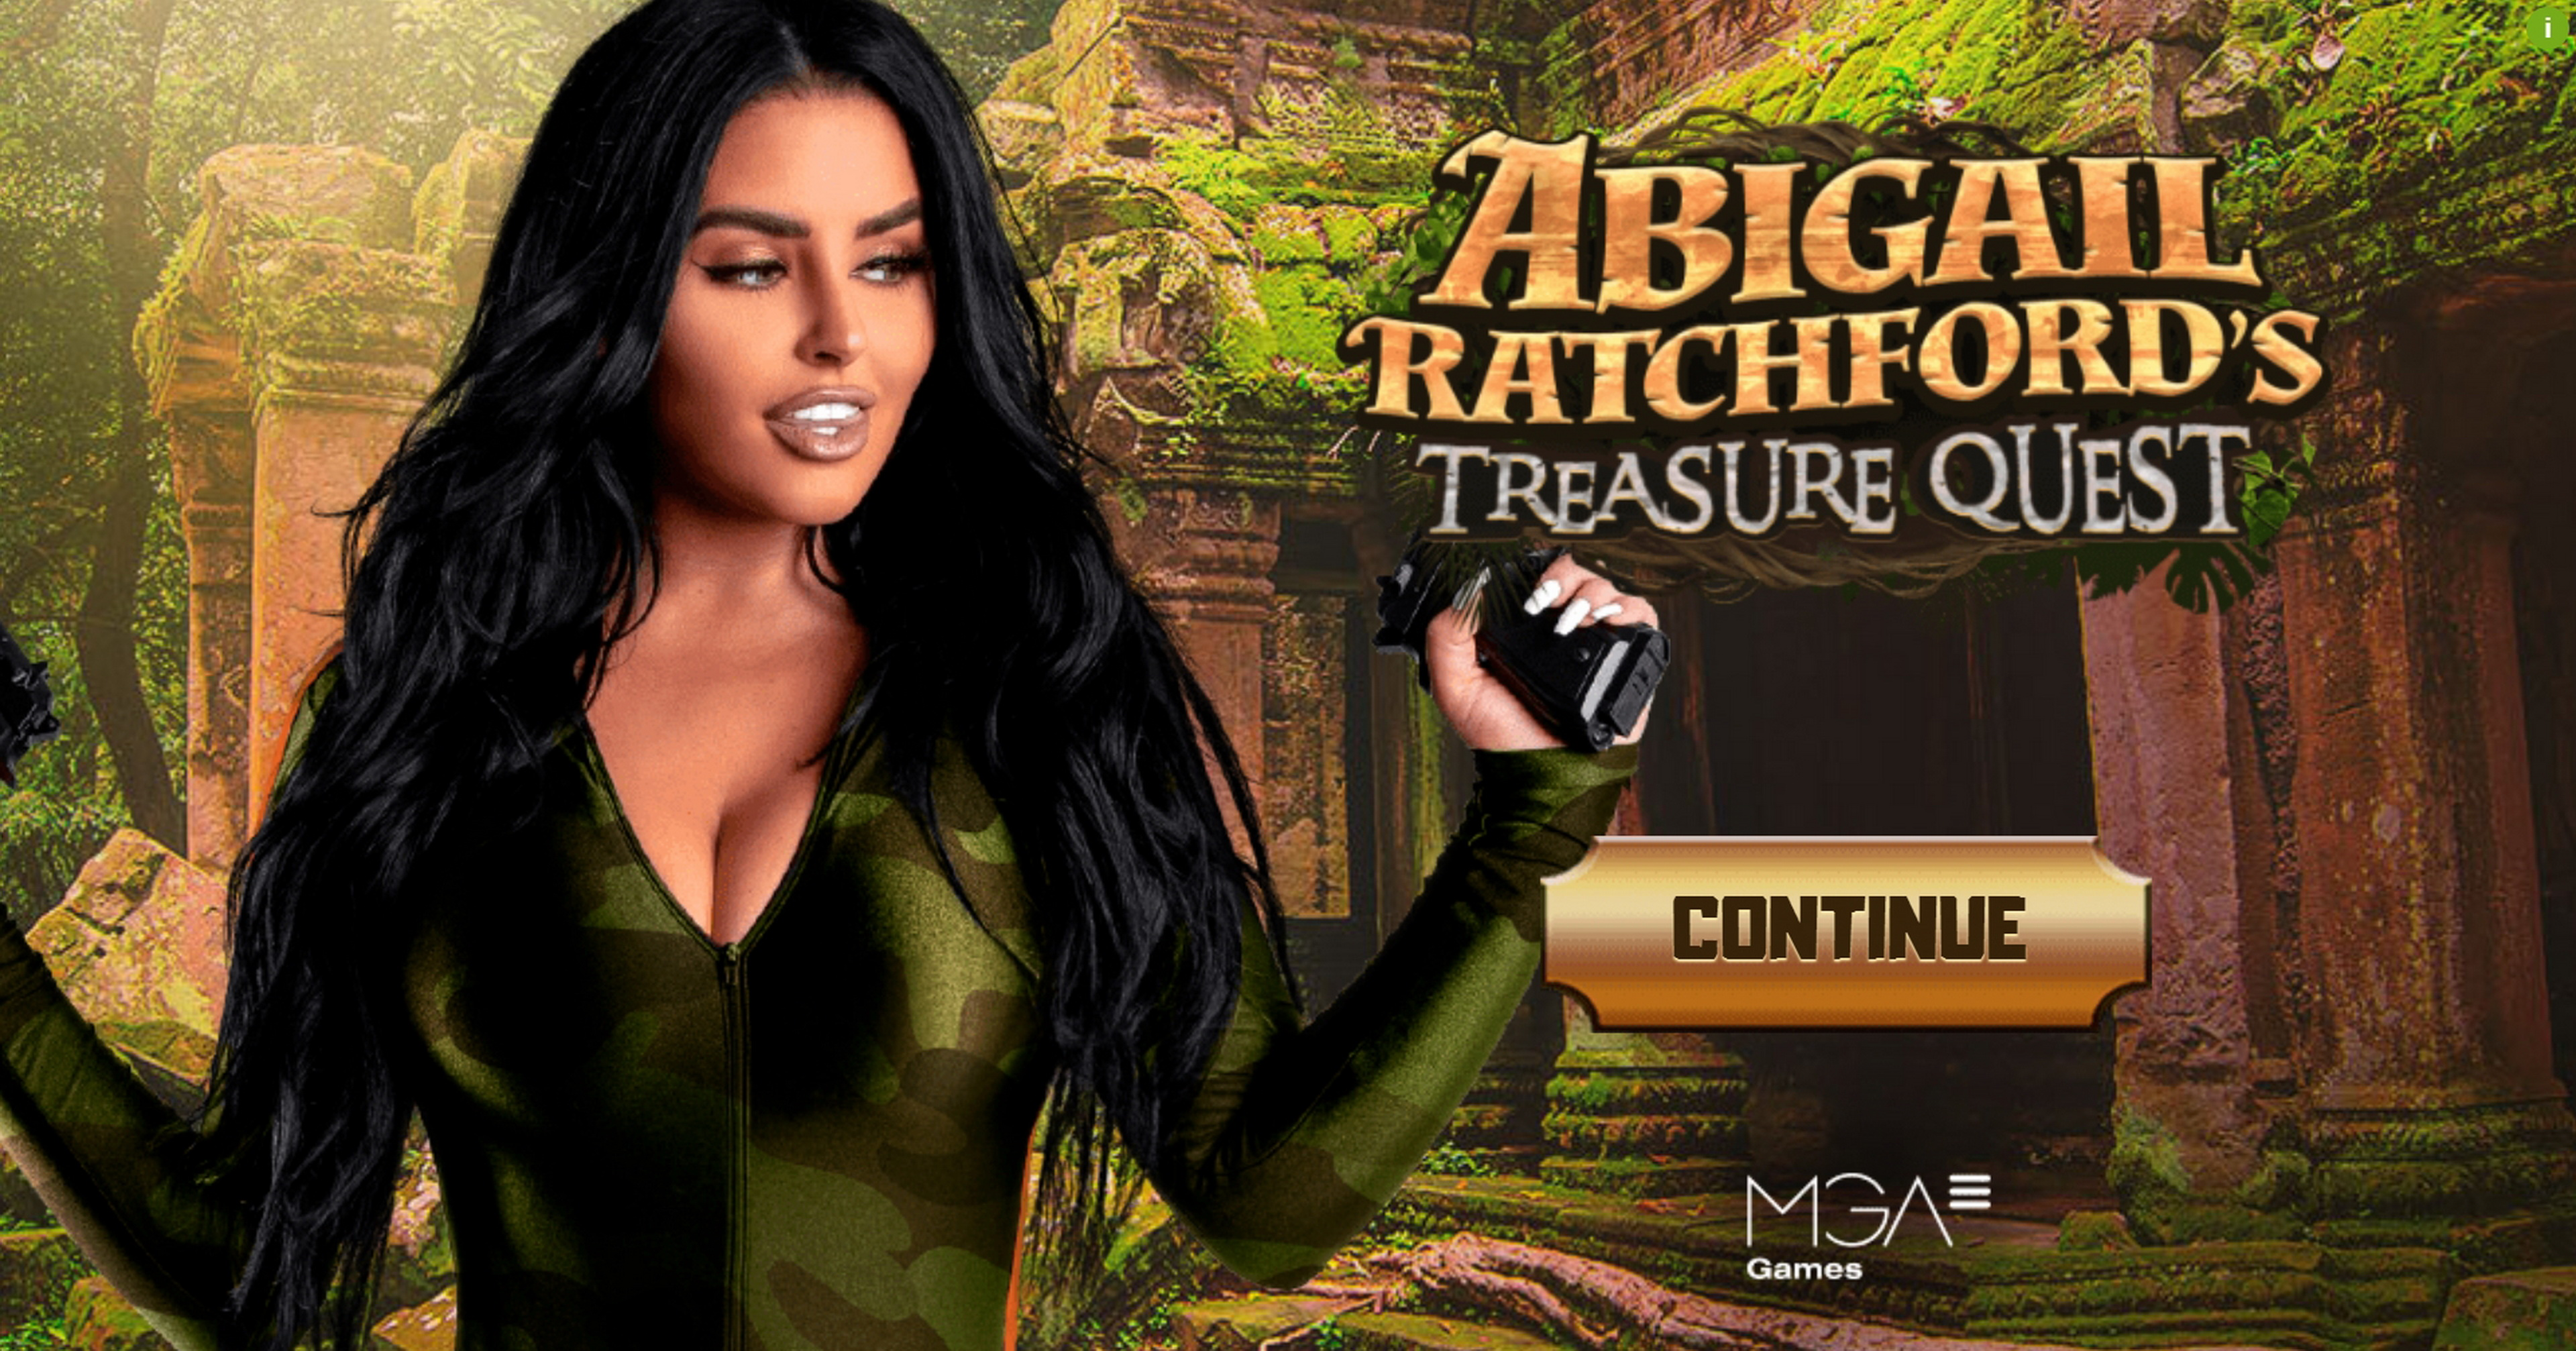 Play Abigail Ratchfords Treasure Quest Free Casino Slot Game by MGA